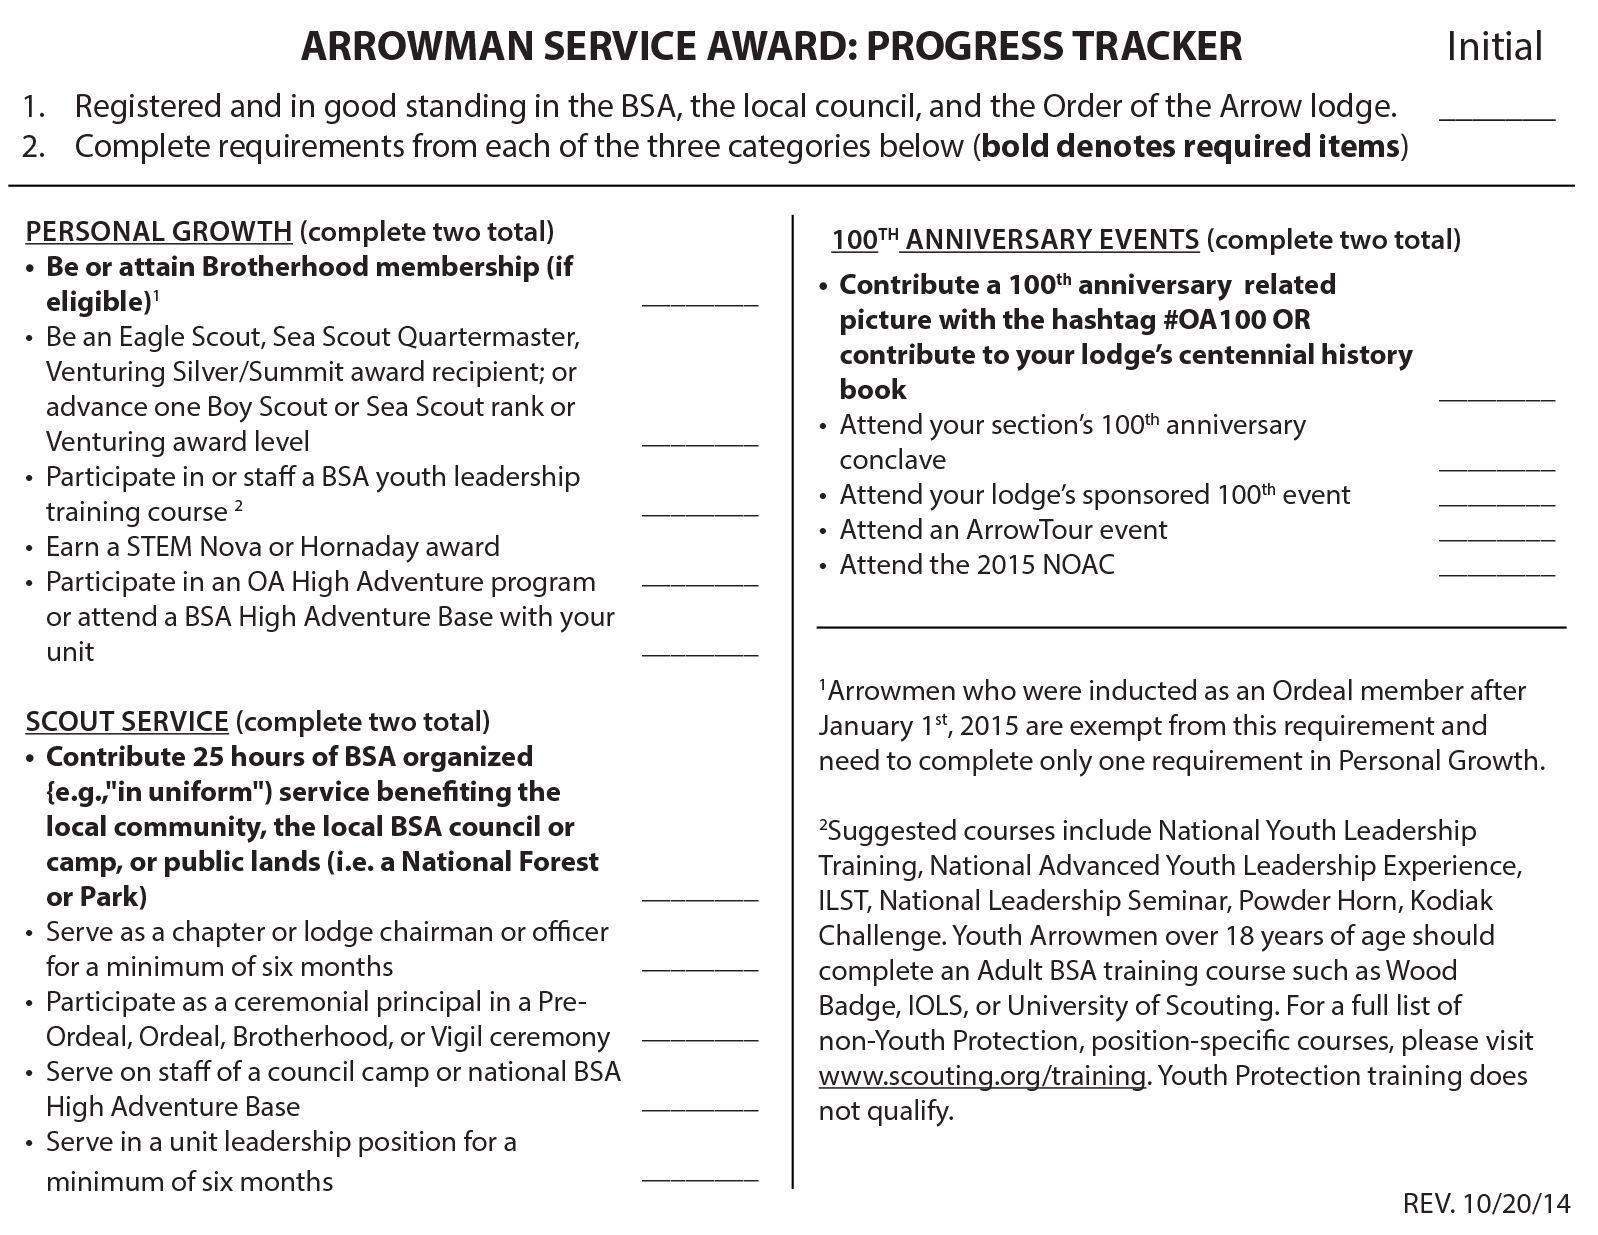 arrowman-service-award-requirements-for-youth